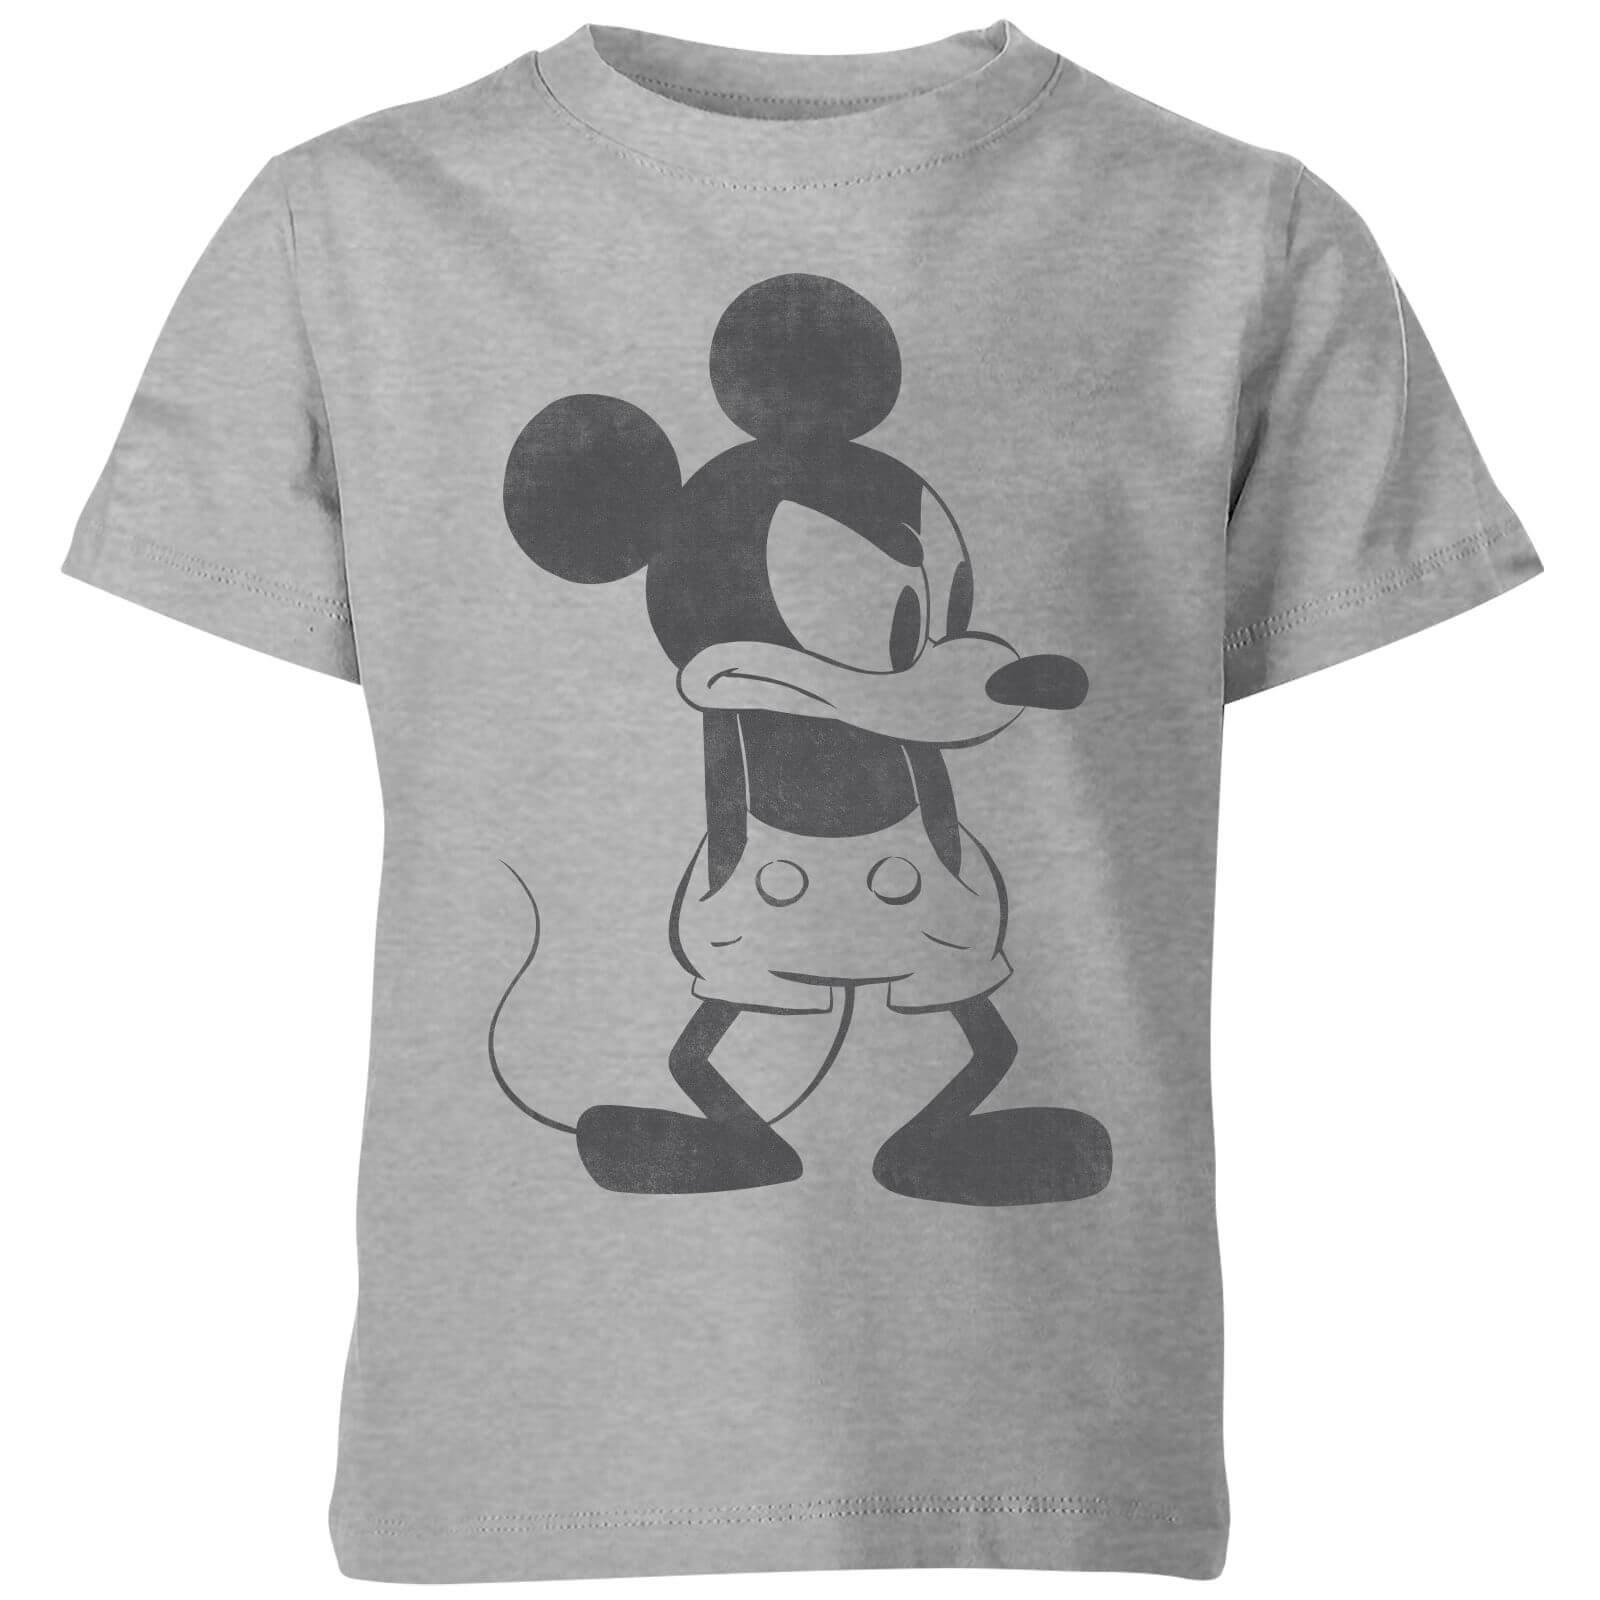 Disney Angry Mickey Mouse Kids